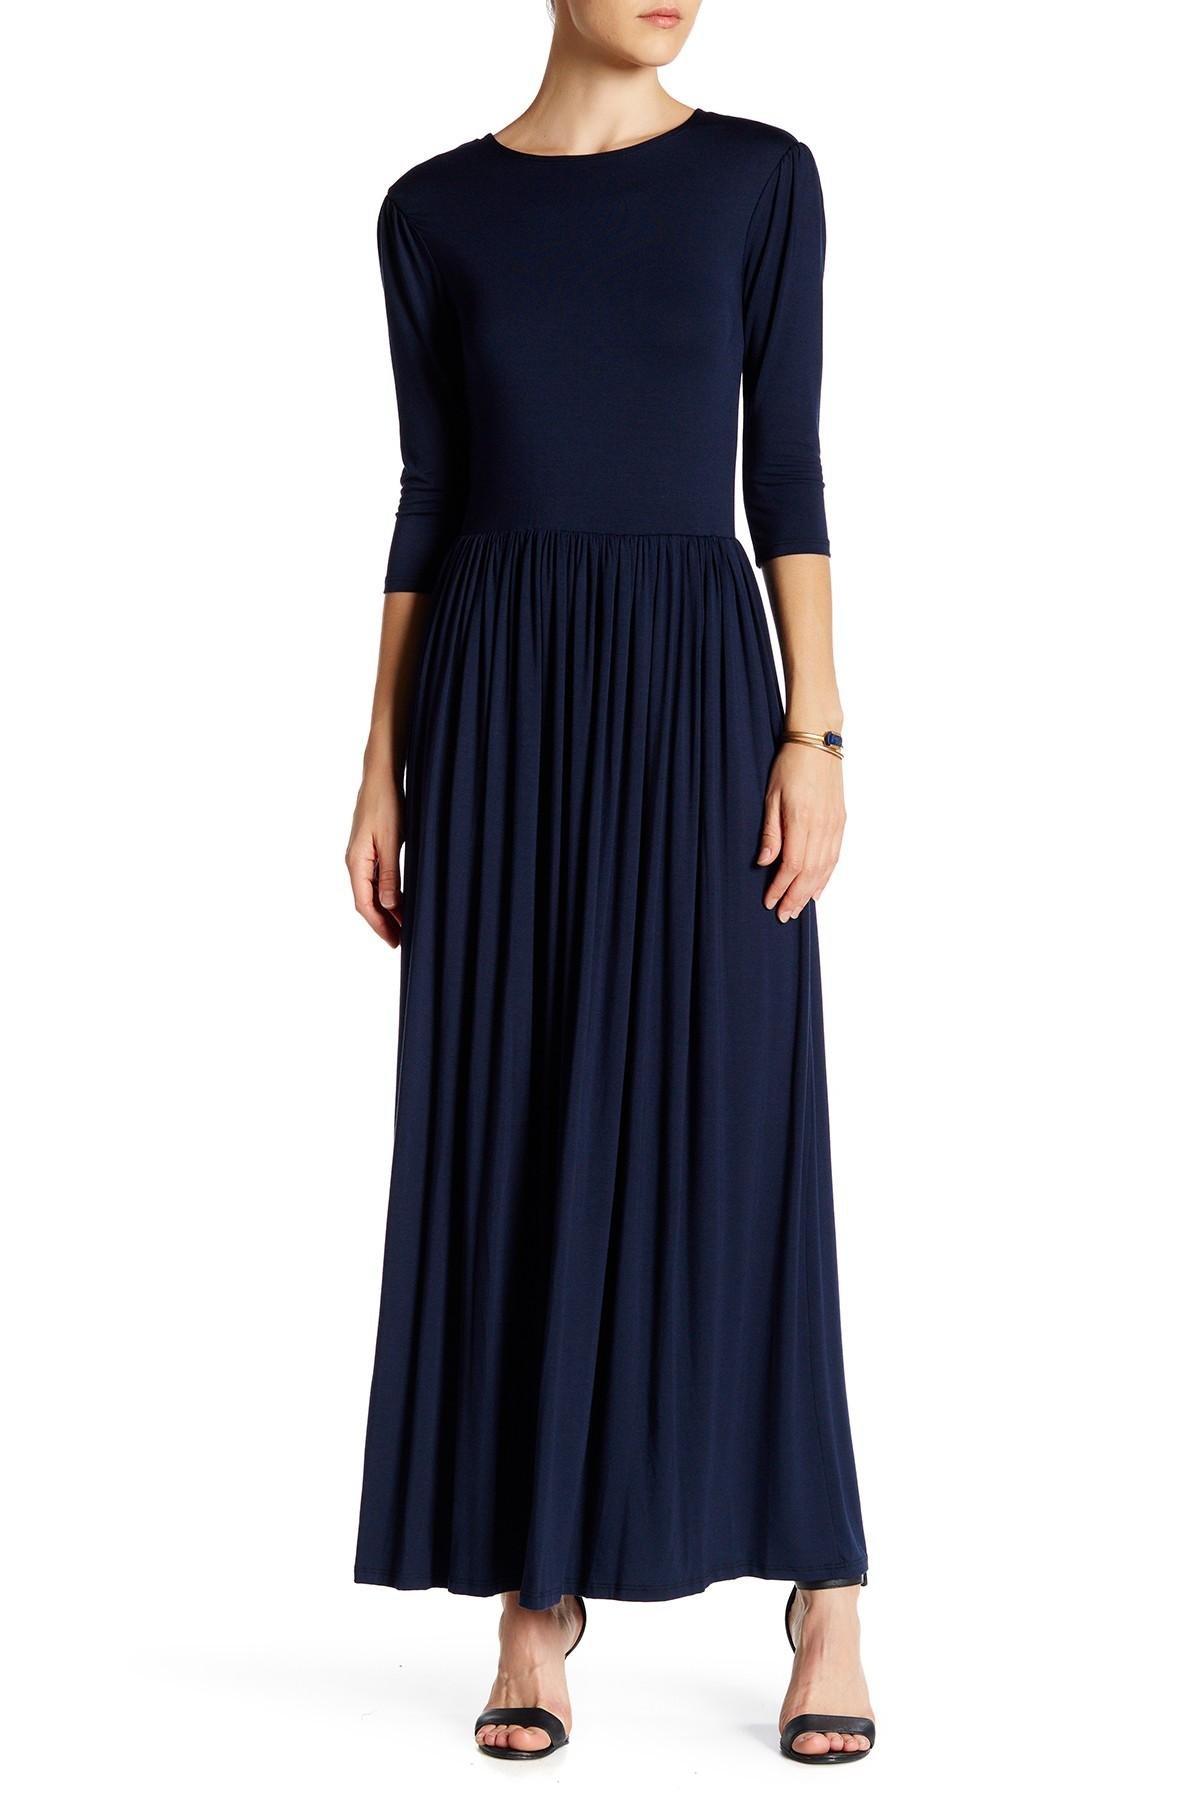 Go Couture 3 4 Length Sleeve Pleated Maxi Dress In Blue Lyst